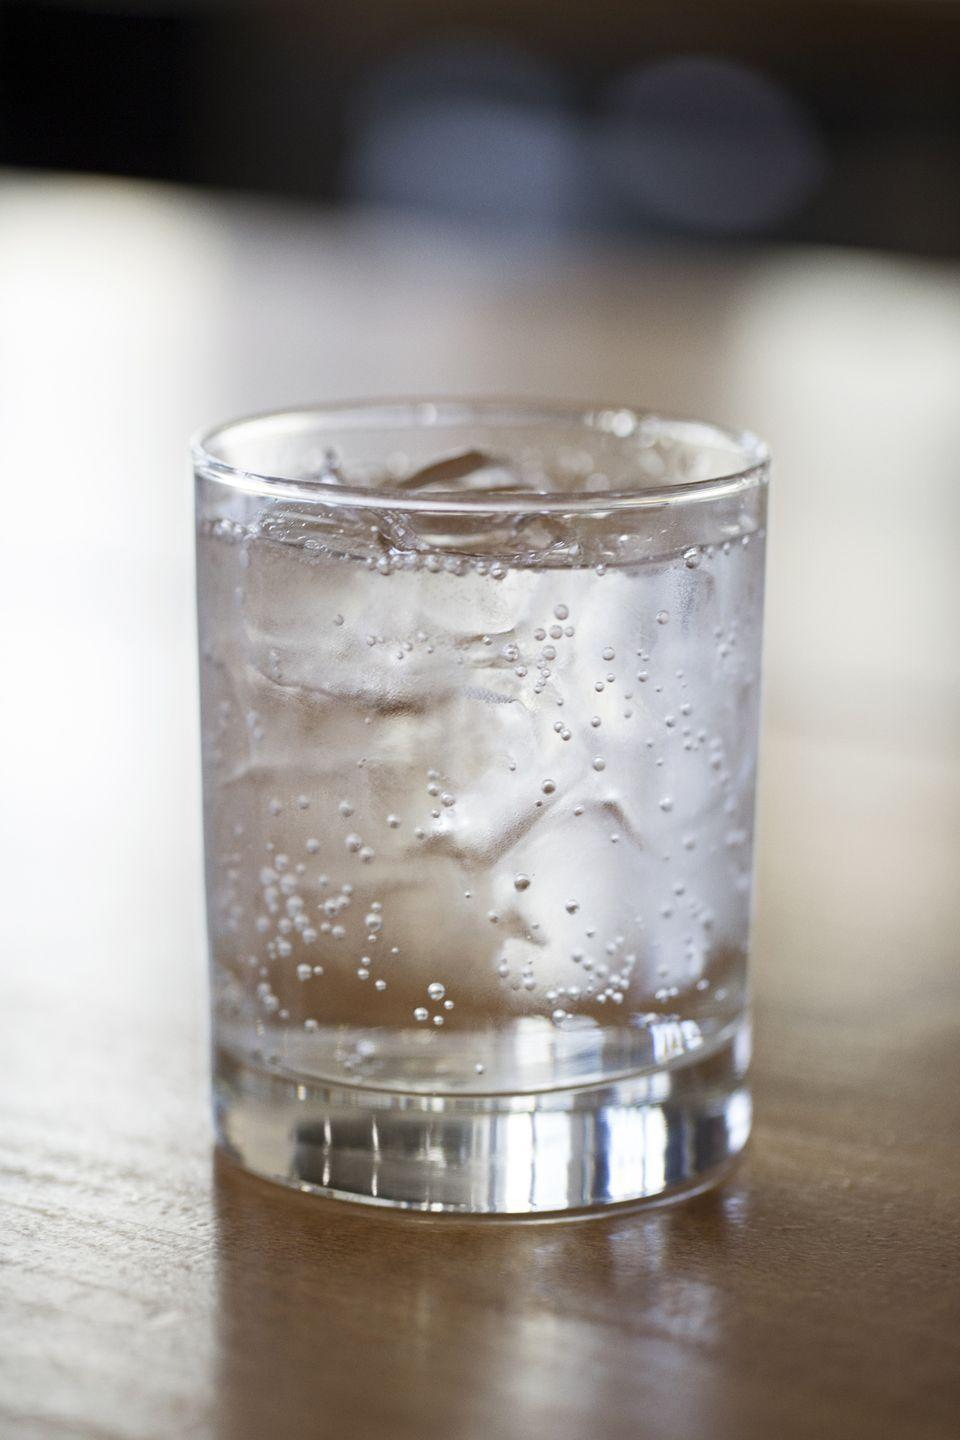 """<p>Subbing seltzer for tap water an easy way to add variety. Boehmer likes to add frozen fruit instead of ice for extra flavor. Pro tip: <a href=""""https://www.amazon.com/Perrier-Pineapple-Flavored-Carbonated-Mineral/dp/B085DWXVTY/ref=sr_1_5?crid=5N7YHRP74GCP&dchild=1&keywords=perrier+sparkling+water+pineapple&qid=1595879119&sprefix=perrier+sparkling+wateer+pineap%2Caps%2C146&sr=8-5"""" rel=""""nofollow noopener"""" target=""""_blank"""" data-ylk=""""slk:flavored seltzers"""" class=""""link rapid-noclick-resp"""">flavored seltzers </a>taste great alone and enhanced with extra fruit. Just don't down a six pack of sparkling water since that could<a href=""""https://www.menshealth.com/health/a19517635/carbonated-water/"""" rel=""""nofollow noopener"""" target=""""_blank"""" data-ylk=""""slk:damage enamel."""" class=""""link rapid-noclick-resp""""> damage enamel.</a> </p>"""